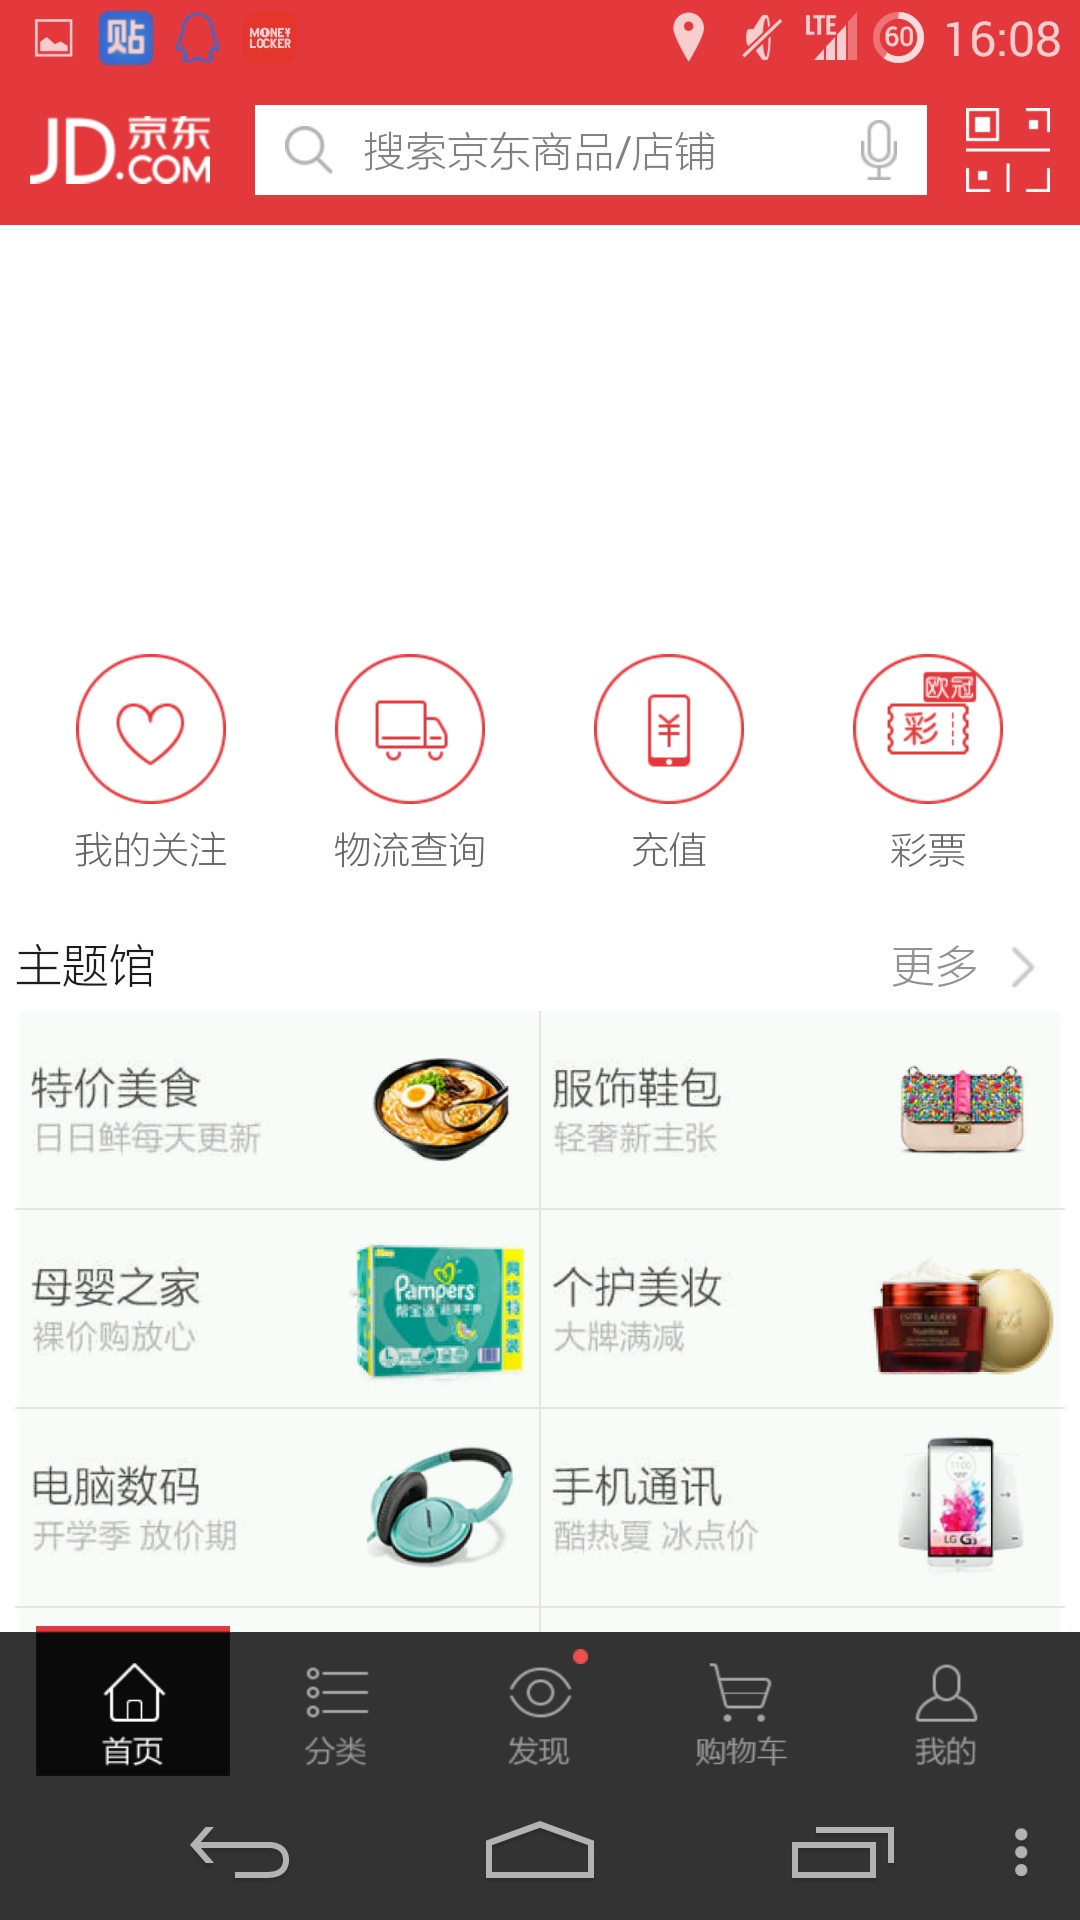 Screenshot_2013-09-17-16-08-45.png